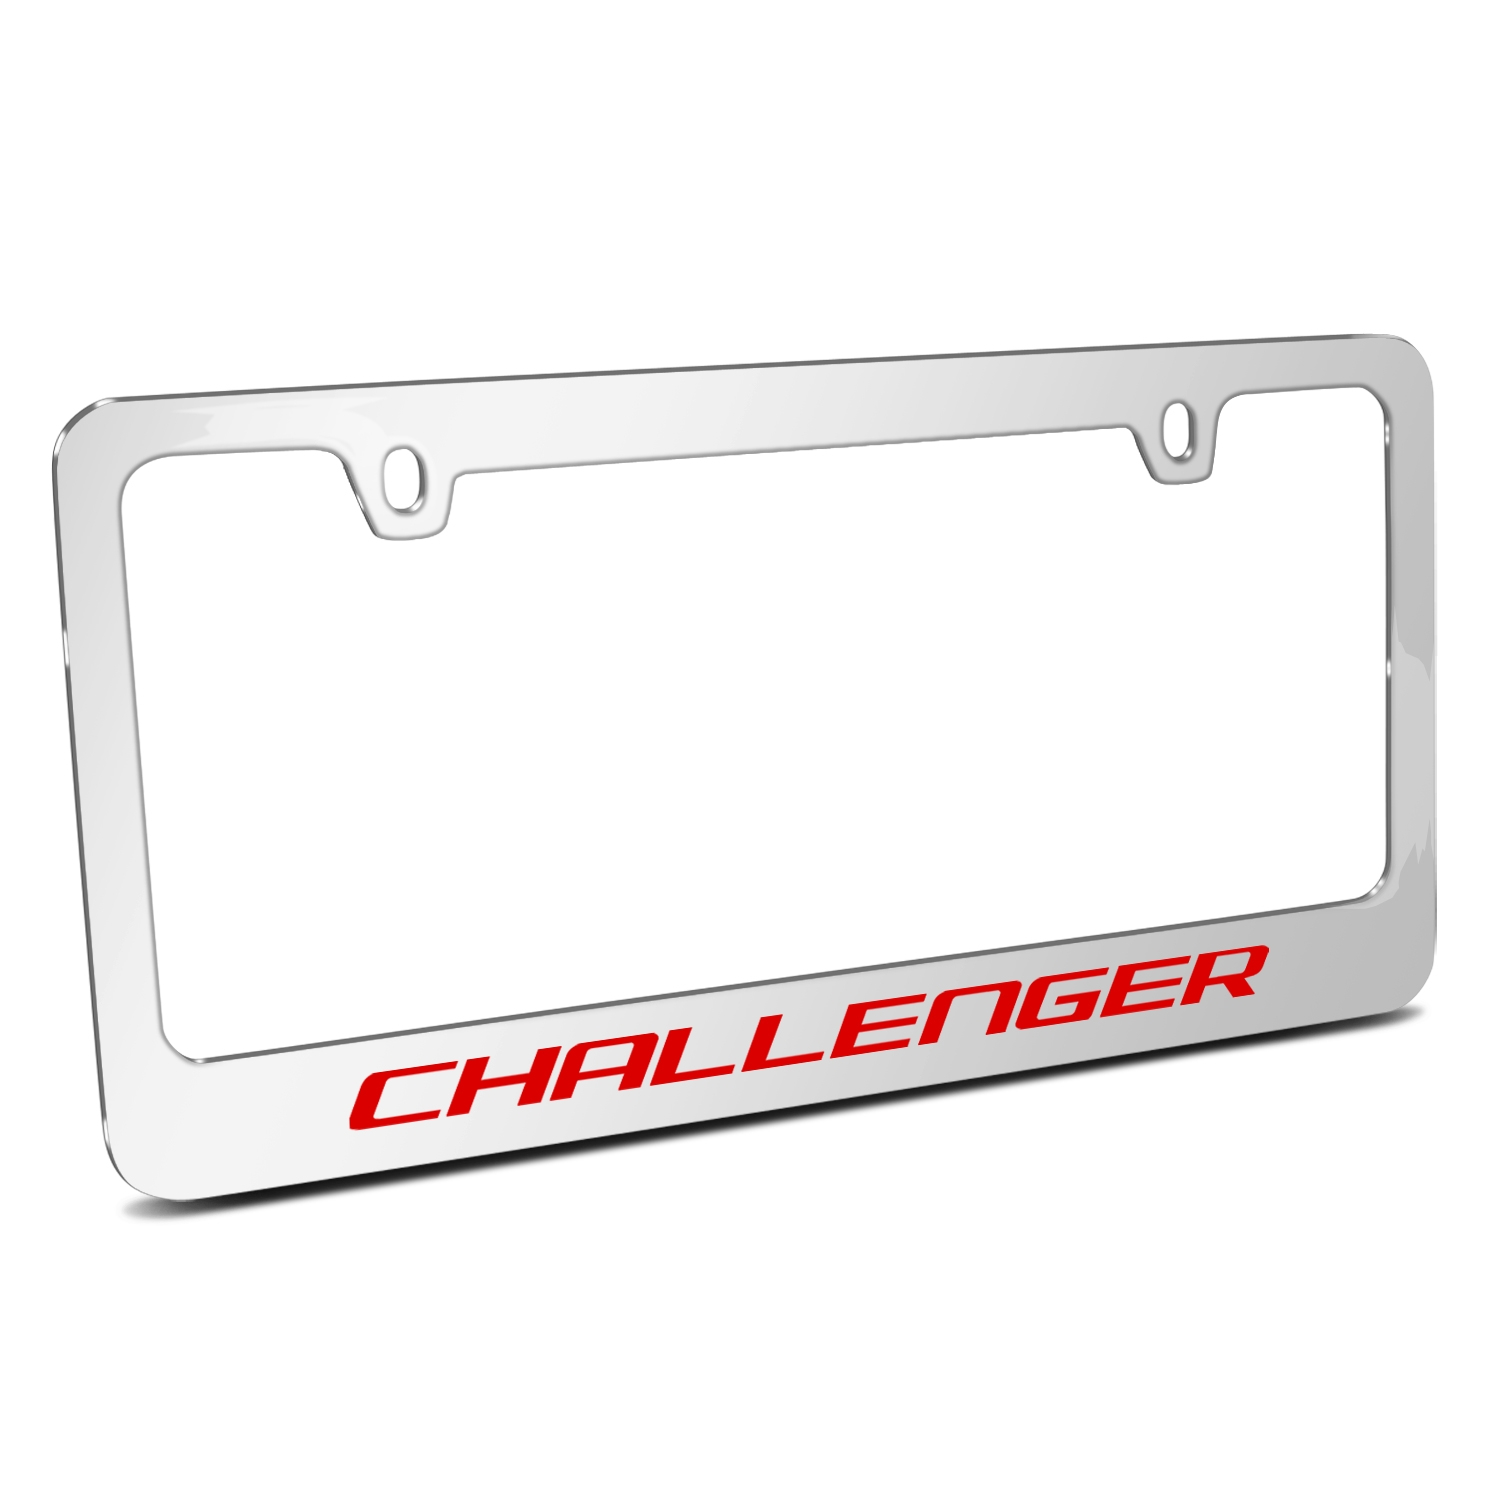 Dodge Challenger in Red Mirror Chrome Metal License Plate Frame